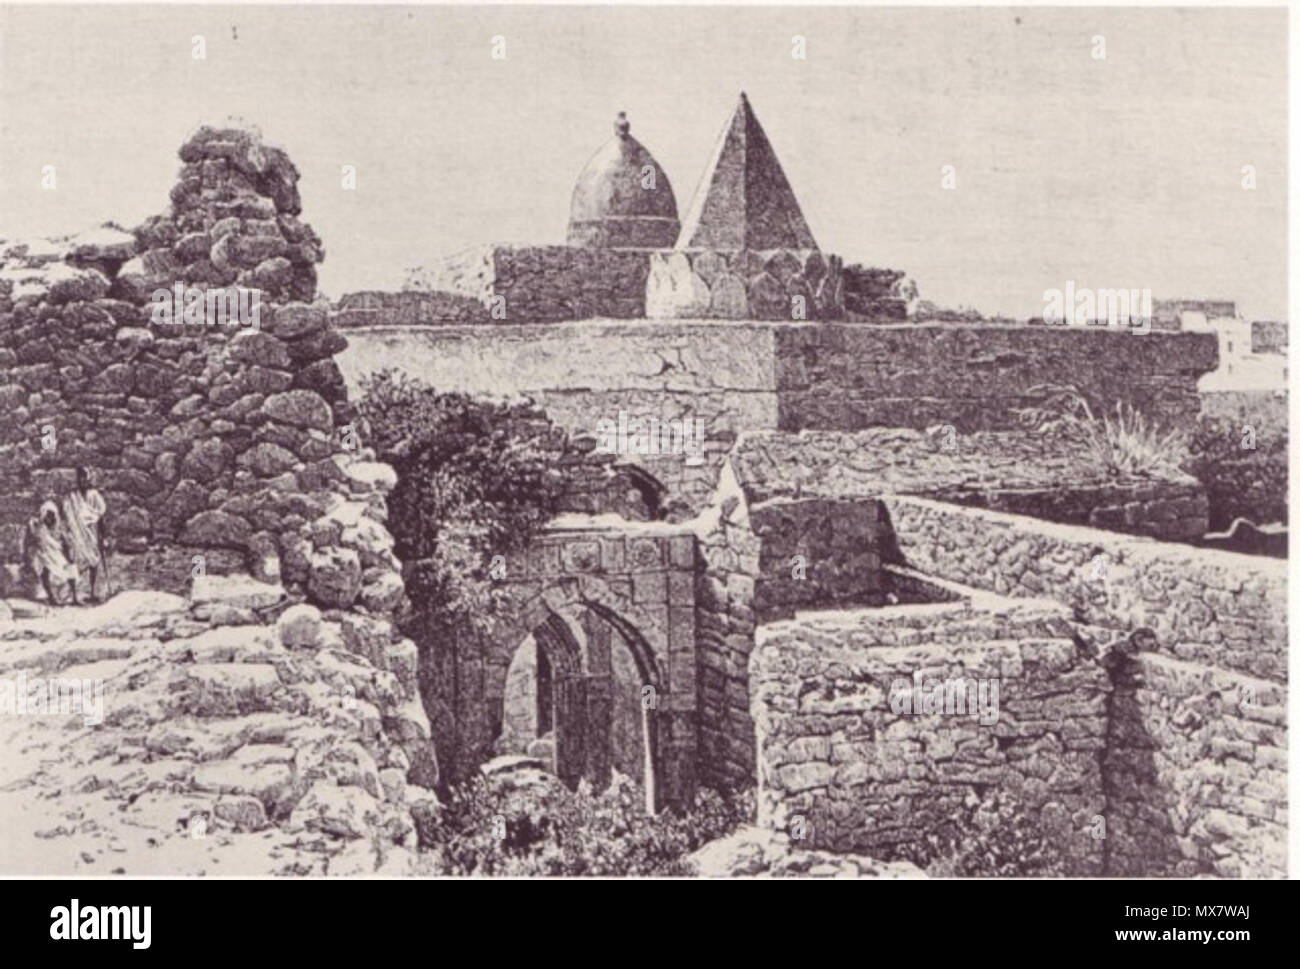 . 'The Fakhr Ad-Din Mosque' in Mogadishu in 1882. From E.Cerulli, Somalia, Scritti Vari Editi ed Inediti, Vol. 1., Fig. XV. Istituto Poligrafico dello Stato, P.V., Rome, 1957. Figure is referenced as Dal Voyage chez les Benadirs di G. Revoil. Figure courtesy Library of Congress' (from page 138 of 'Somalia in Word and Image', 1986, Ed by K.S. Loughran., J.L. Loughran., J.W. Johnson., S.S. Samatar. Published by the Foundation for Cross Cultural Understanding, Washington, D.C., and Indiana University Press). . This file is lacking author information. 202 Fakr Ud Din Mosque - Stock Image